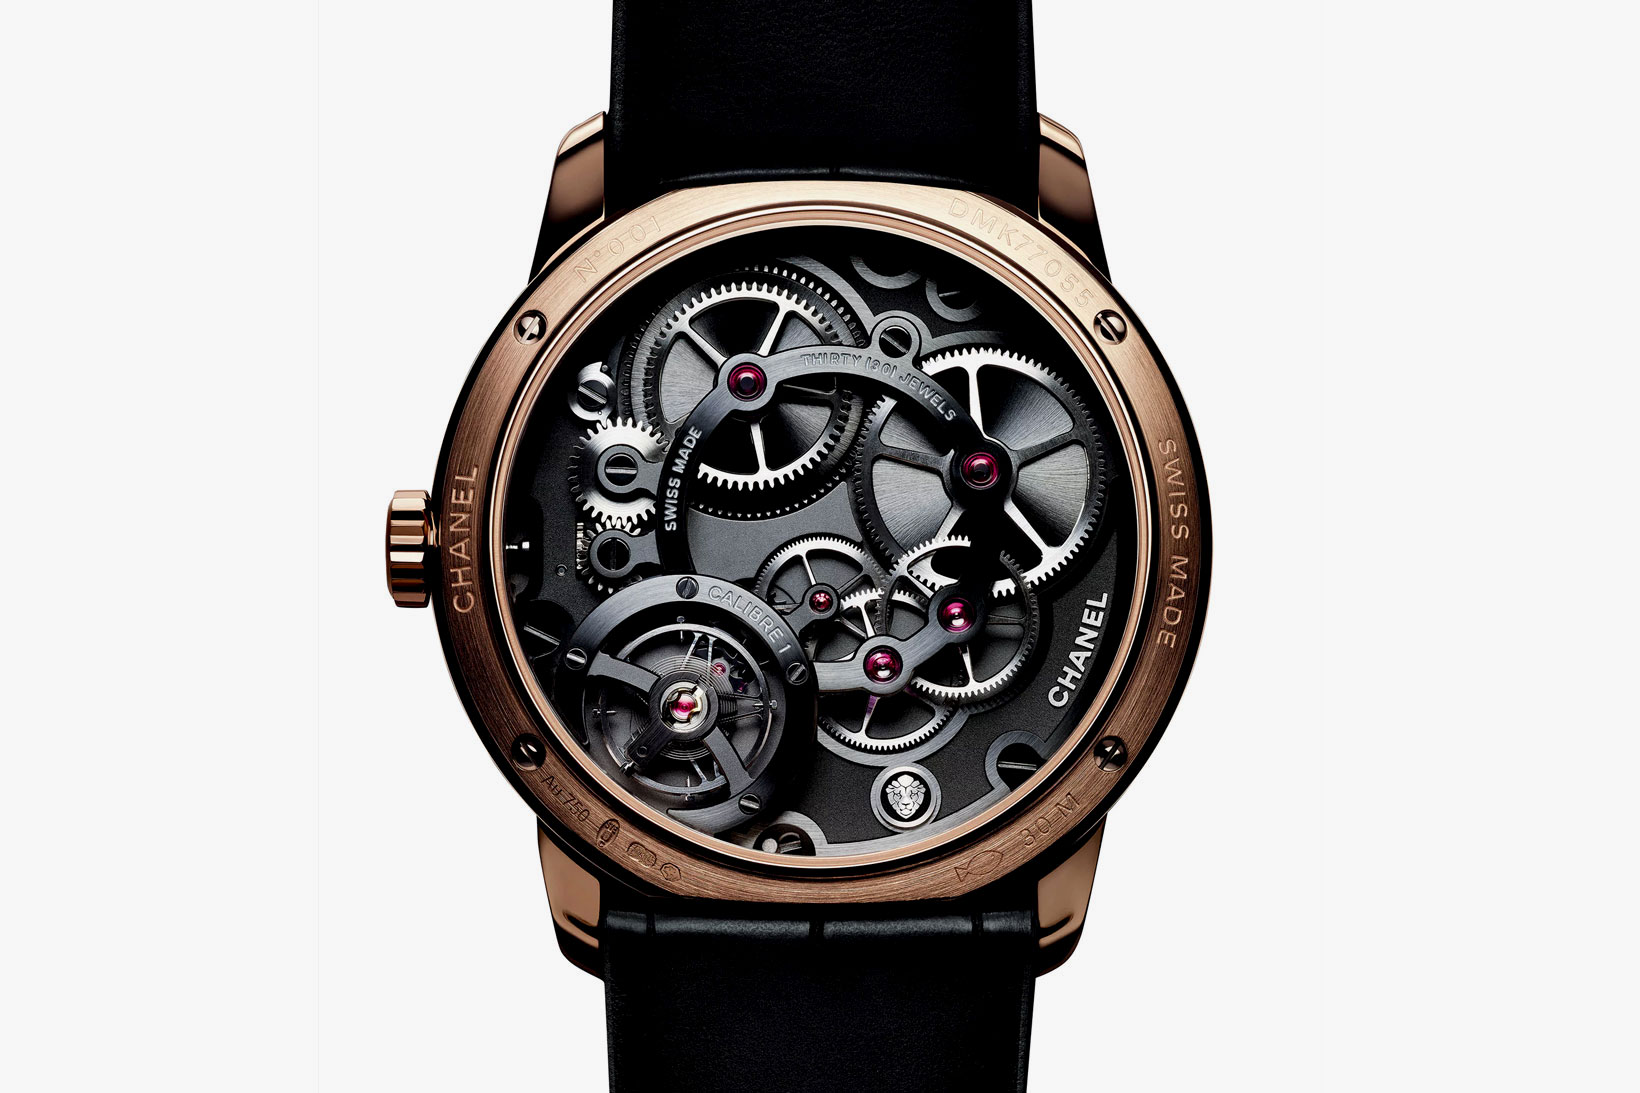 Monsieur de Chanel Limited Edition Platinum and Black Enamel